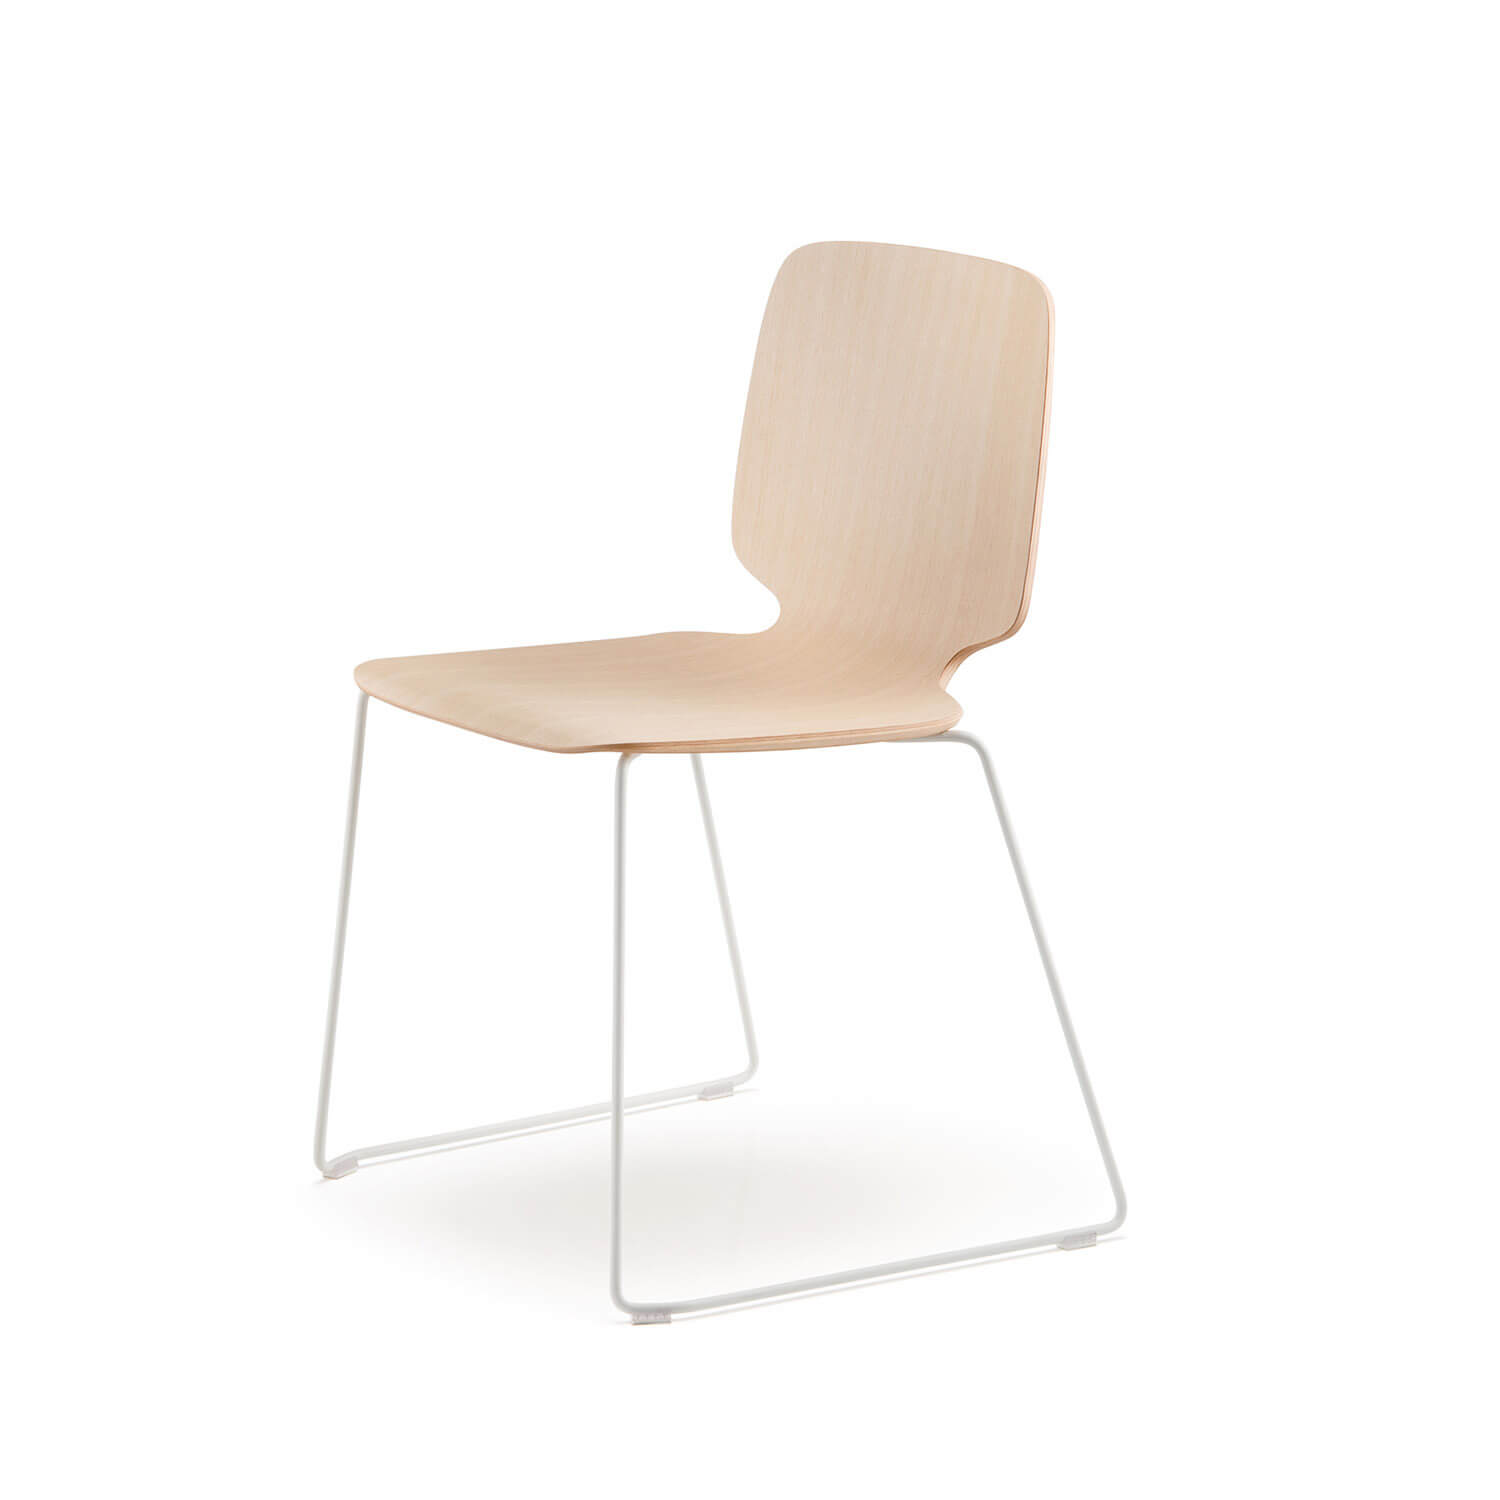 pedrali-babila-chair-2720